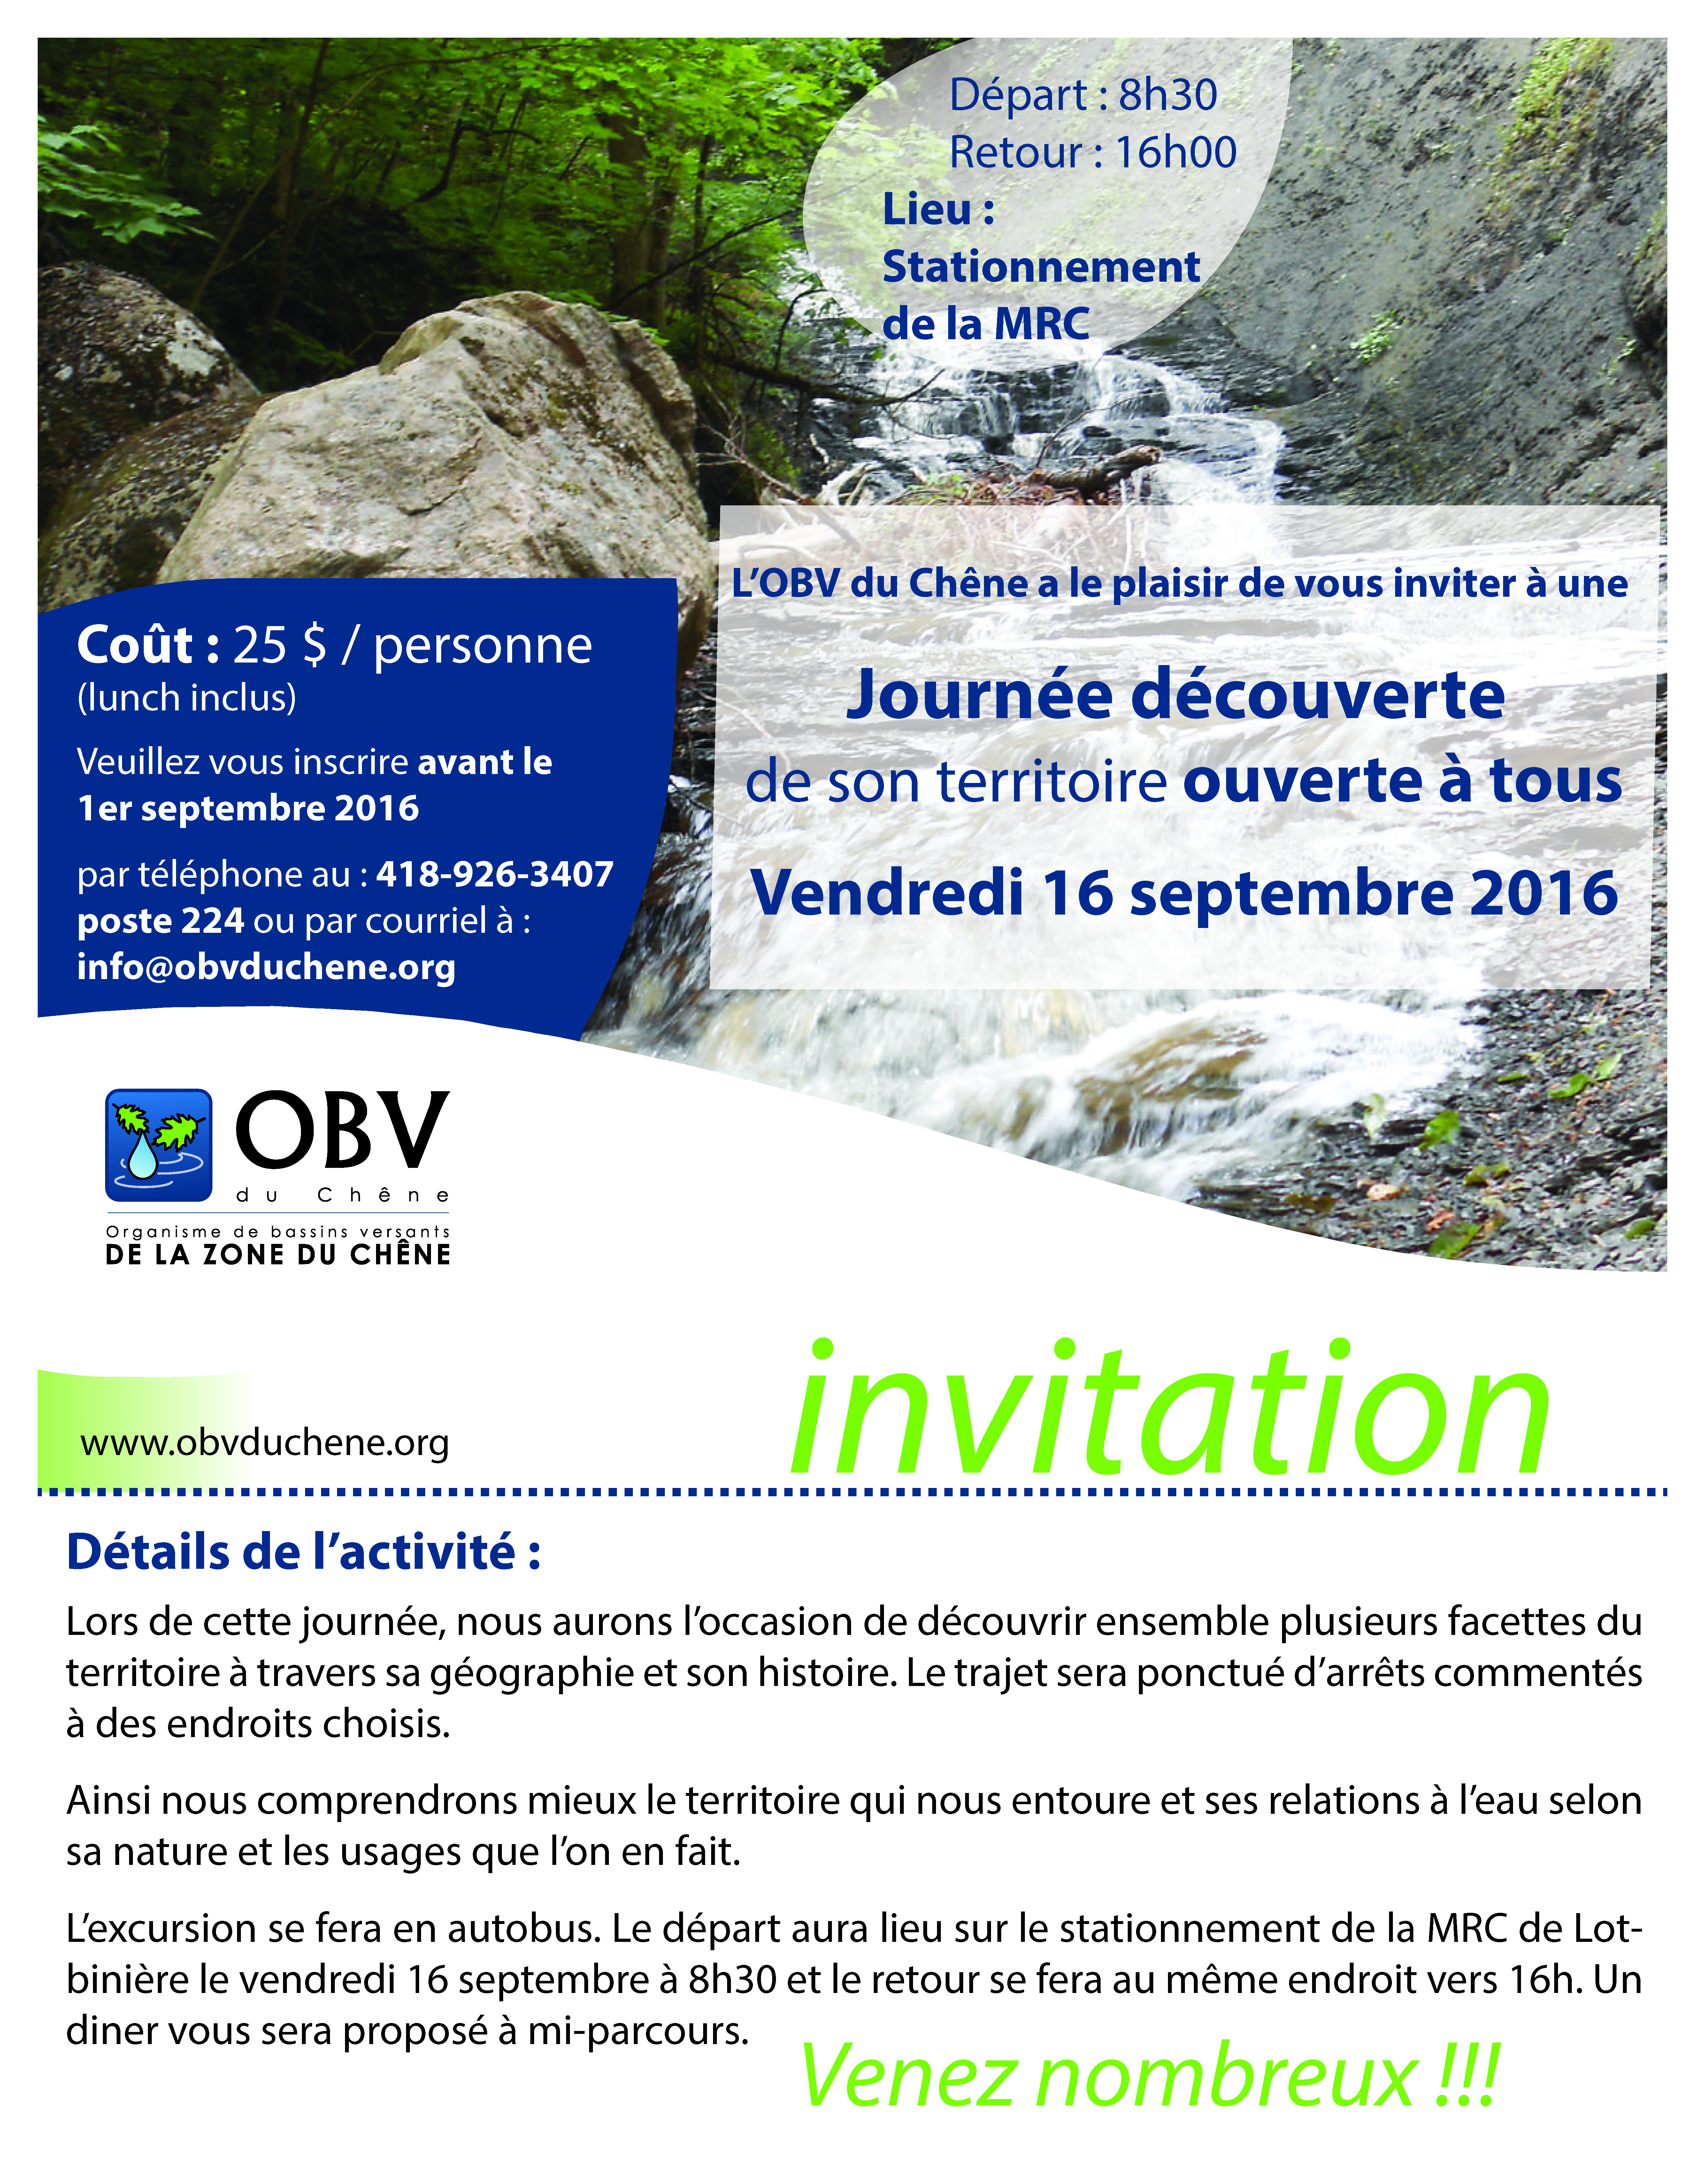 invitation_Journee_decouverte_OBVduChene